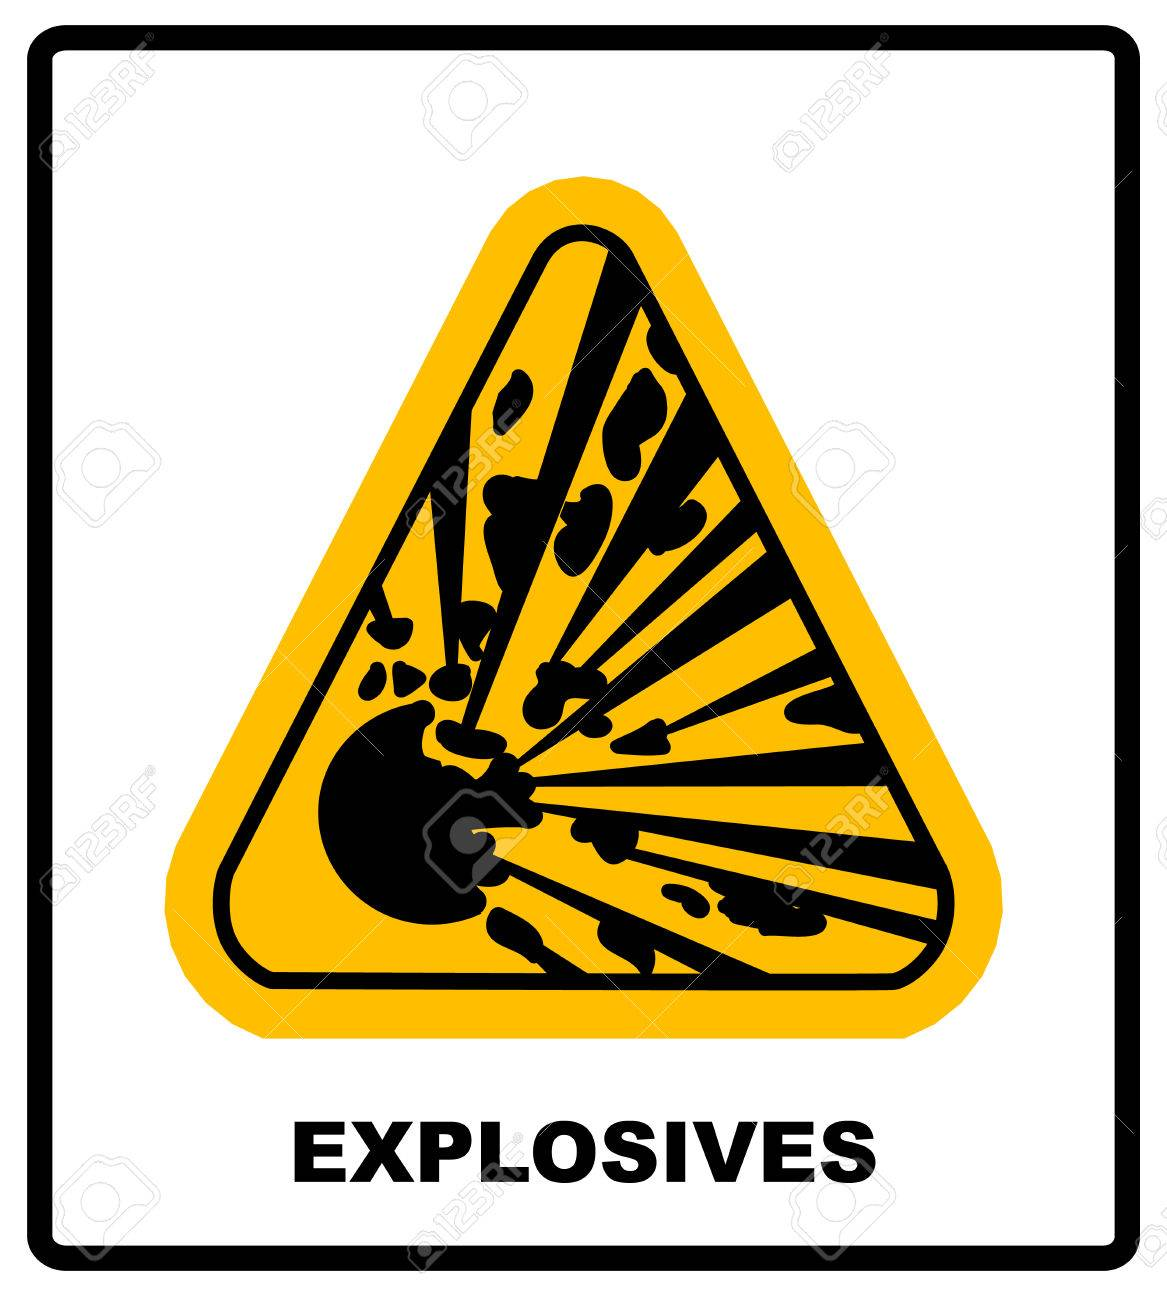 Symbol Of The Explosion In The Yellow Triangle Danger Informational